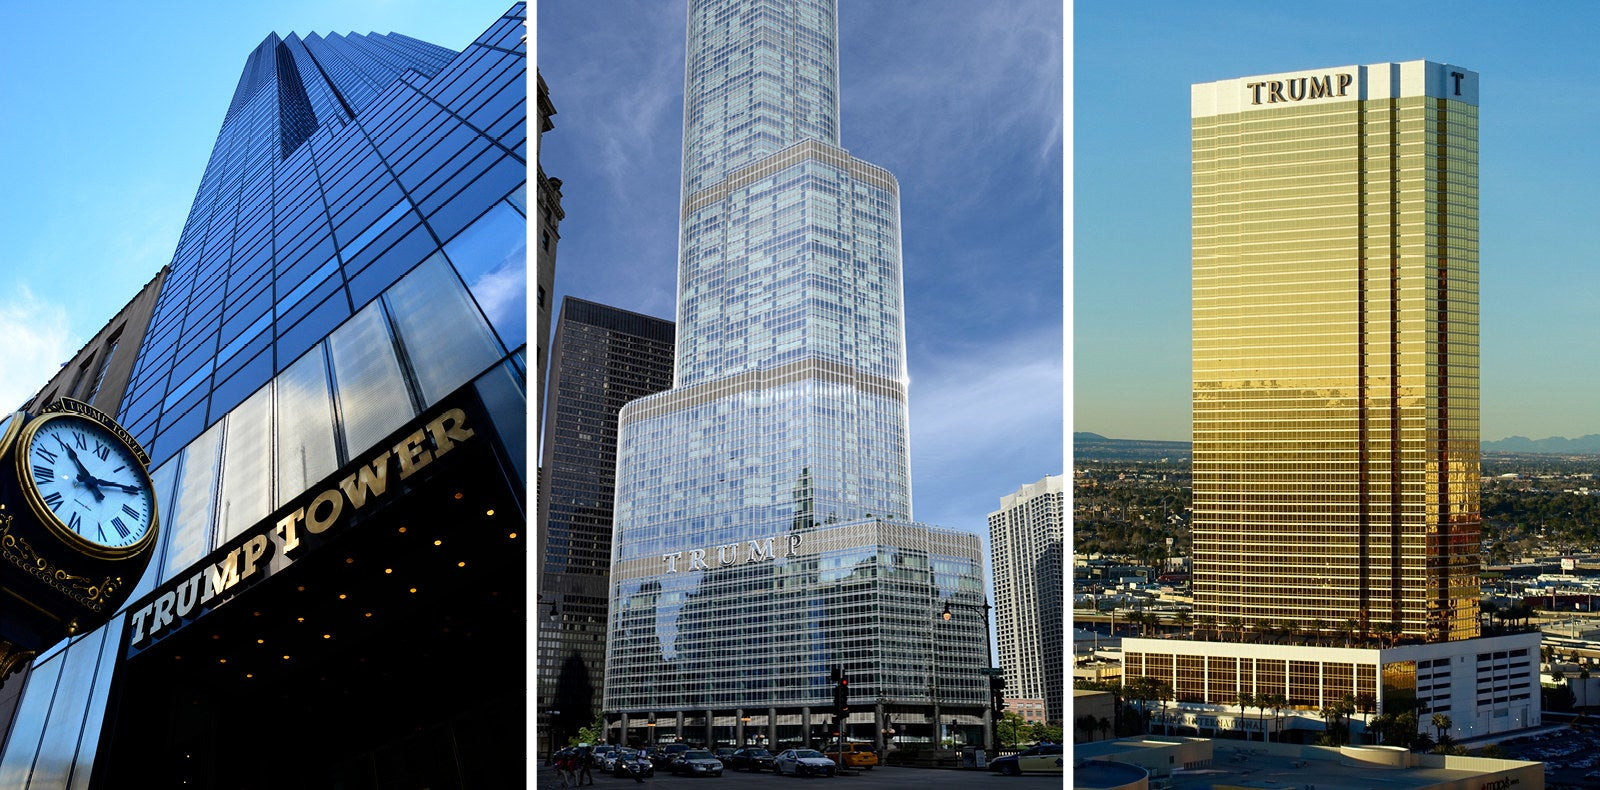 From left to right: Trump Tower in New York City, Trump International Hotel and Tower in Chicago, and Trump International Hotel Las Vegas.